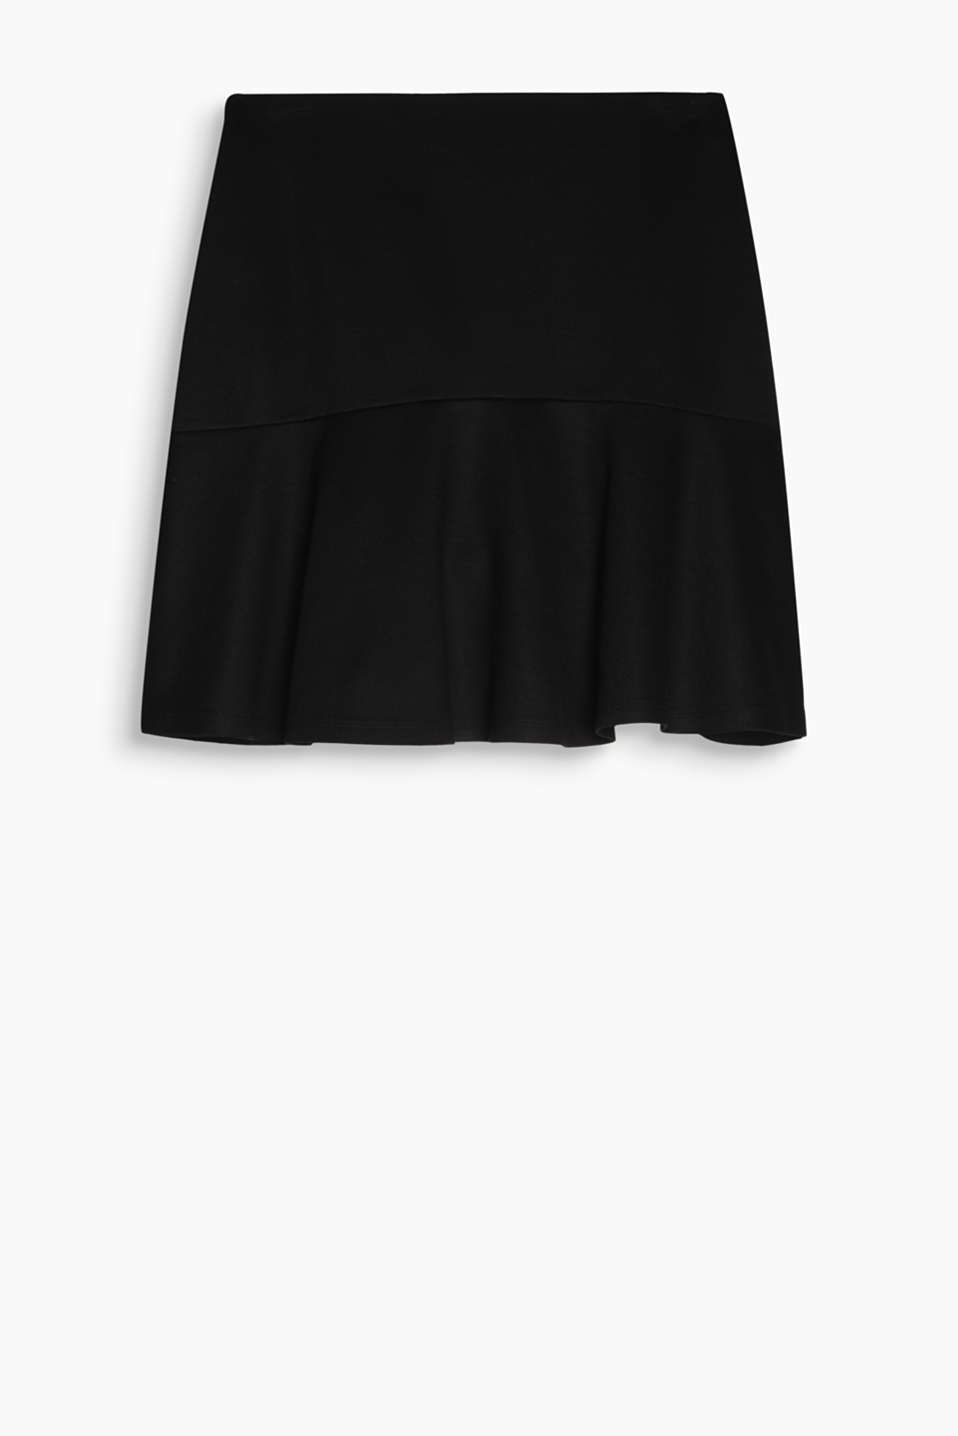 Smart, chic godet skirt in stretch jersey with an elasticated waistband